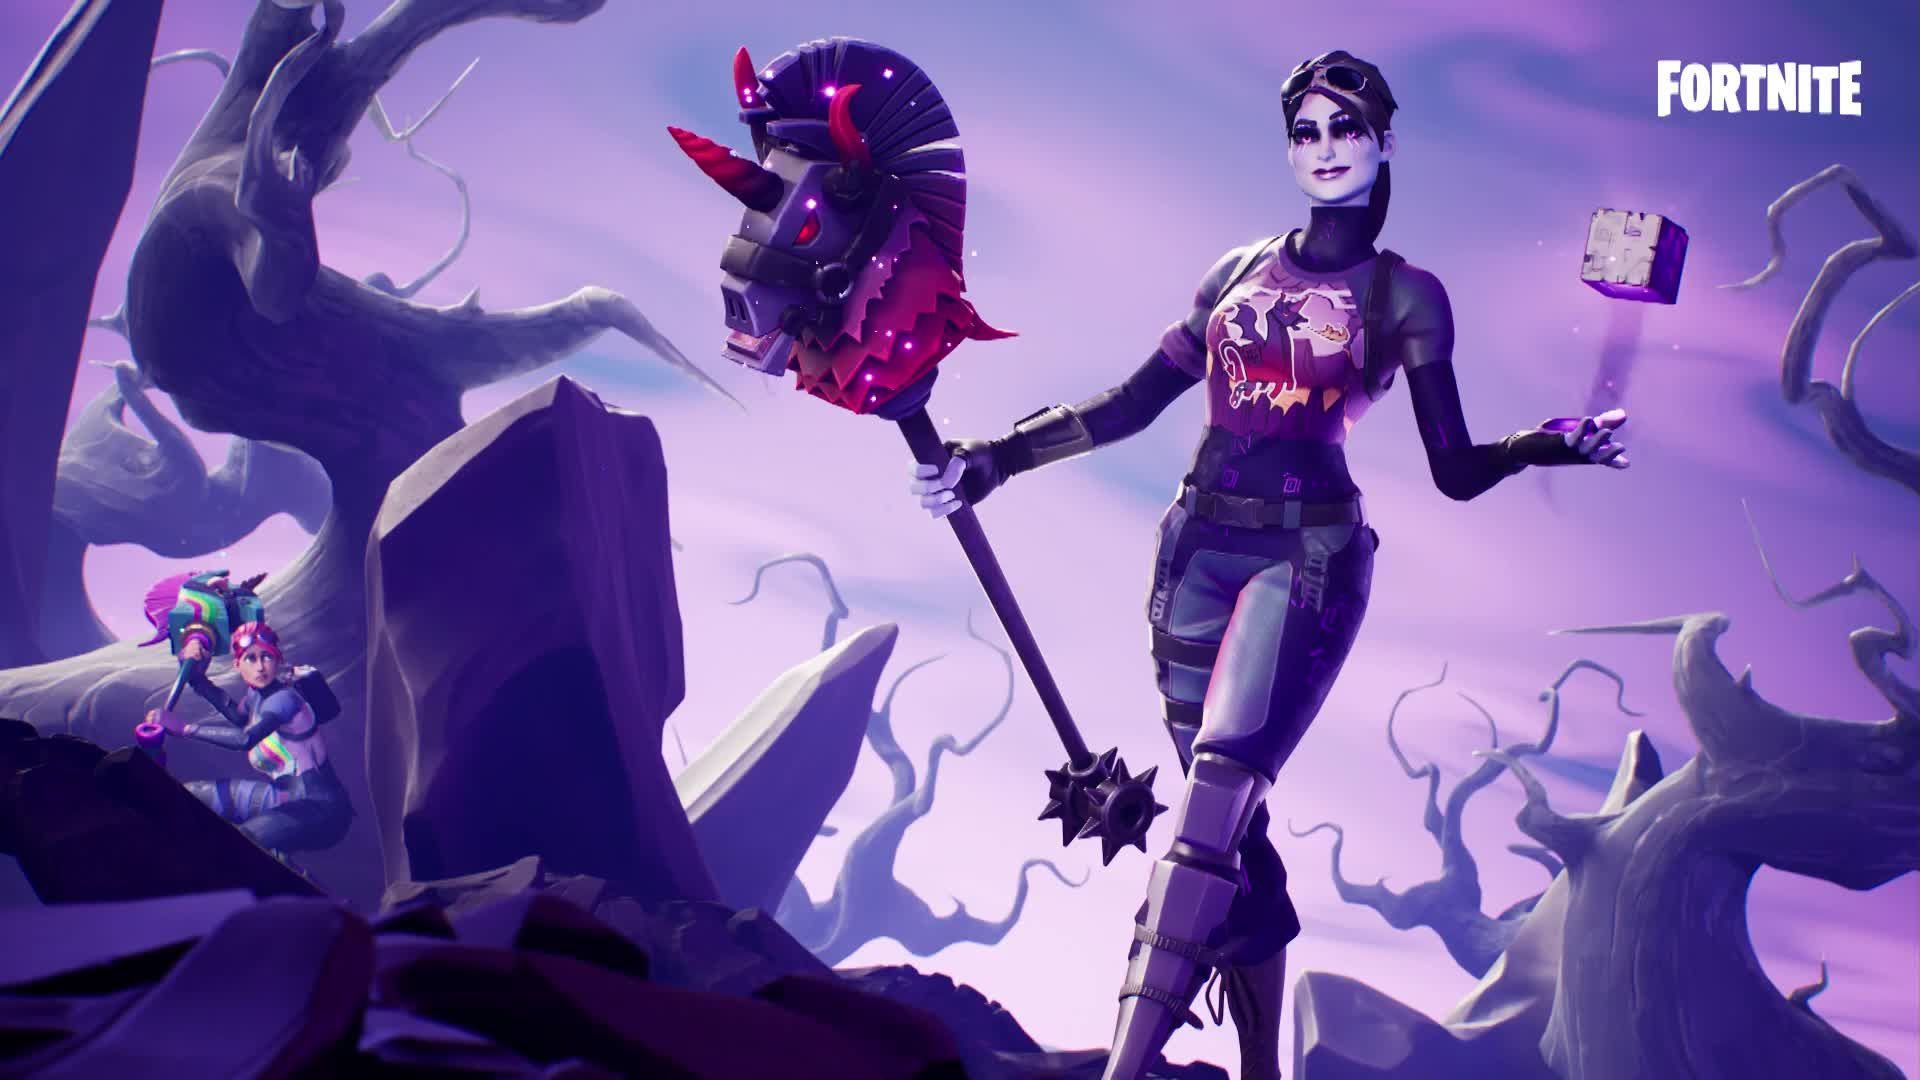 Fortnite Halloween Skin Live Wallpaper With Images Anime Epic